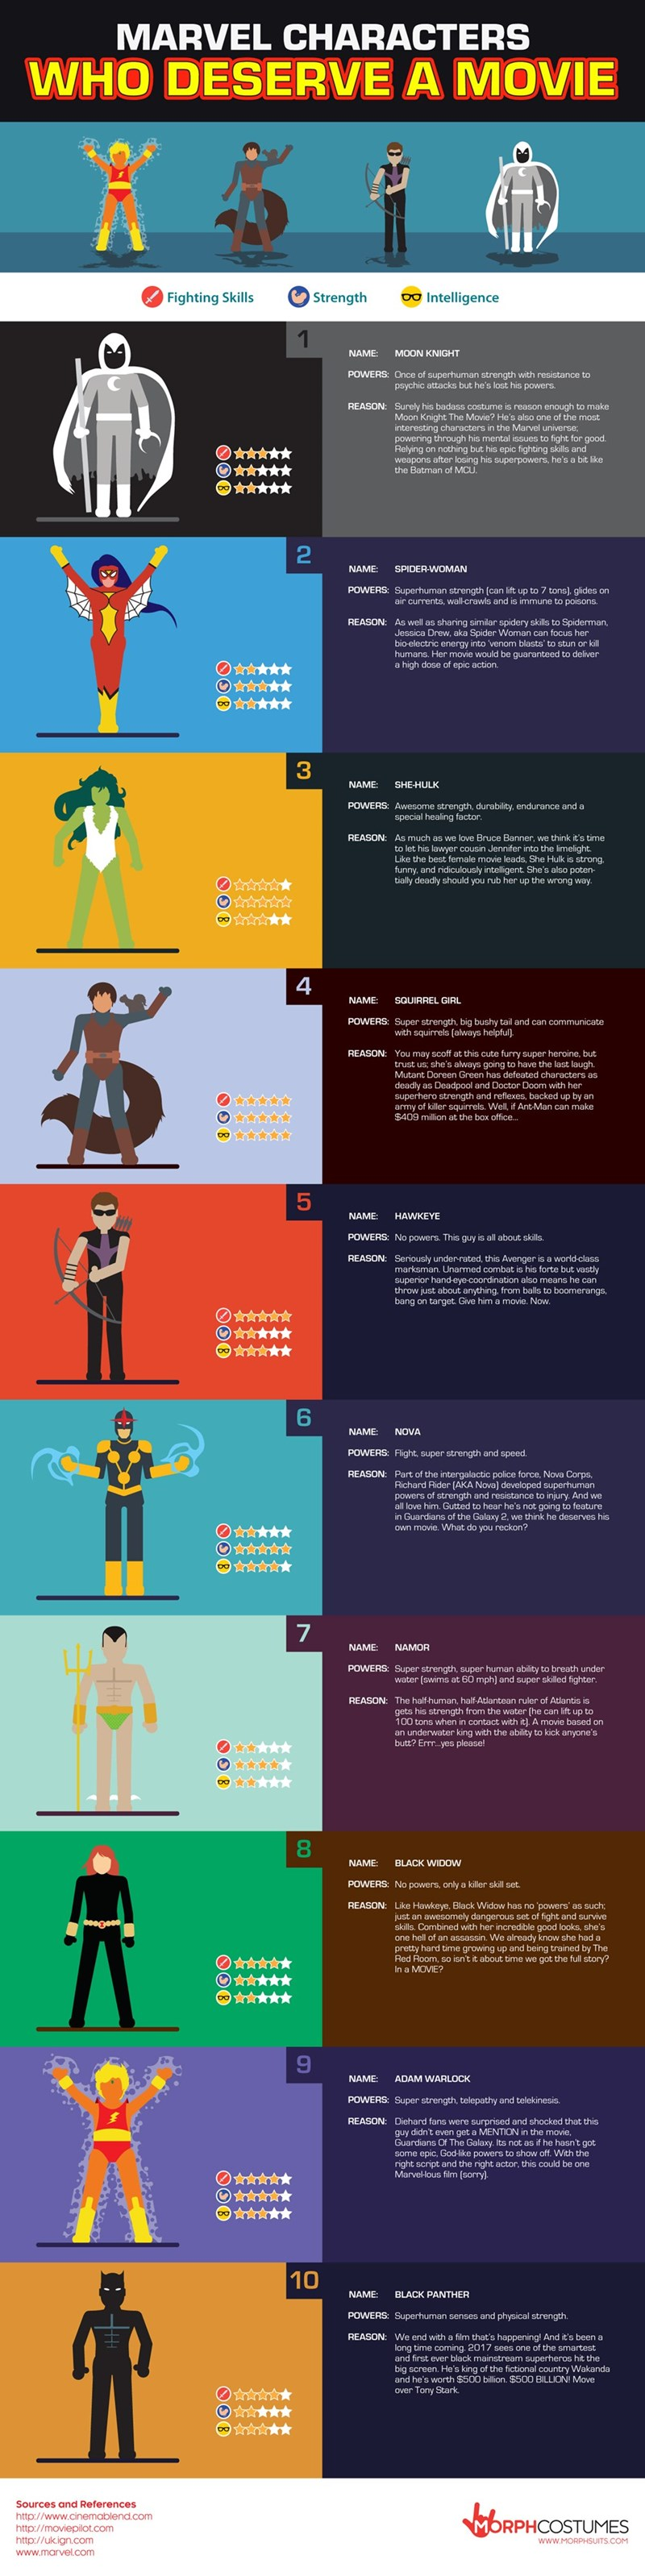 marvel superheroes infographic Marvel Superheroes That Deserve Their Own Movies